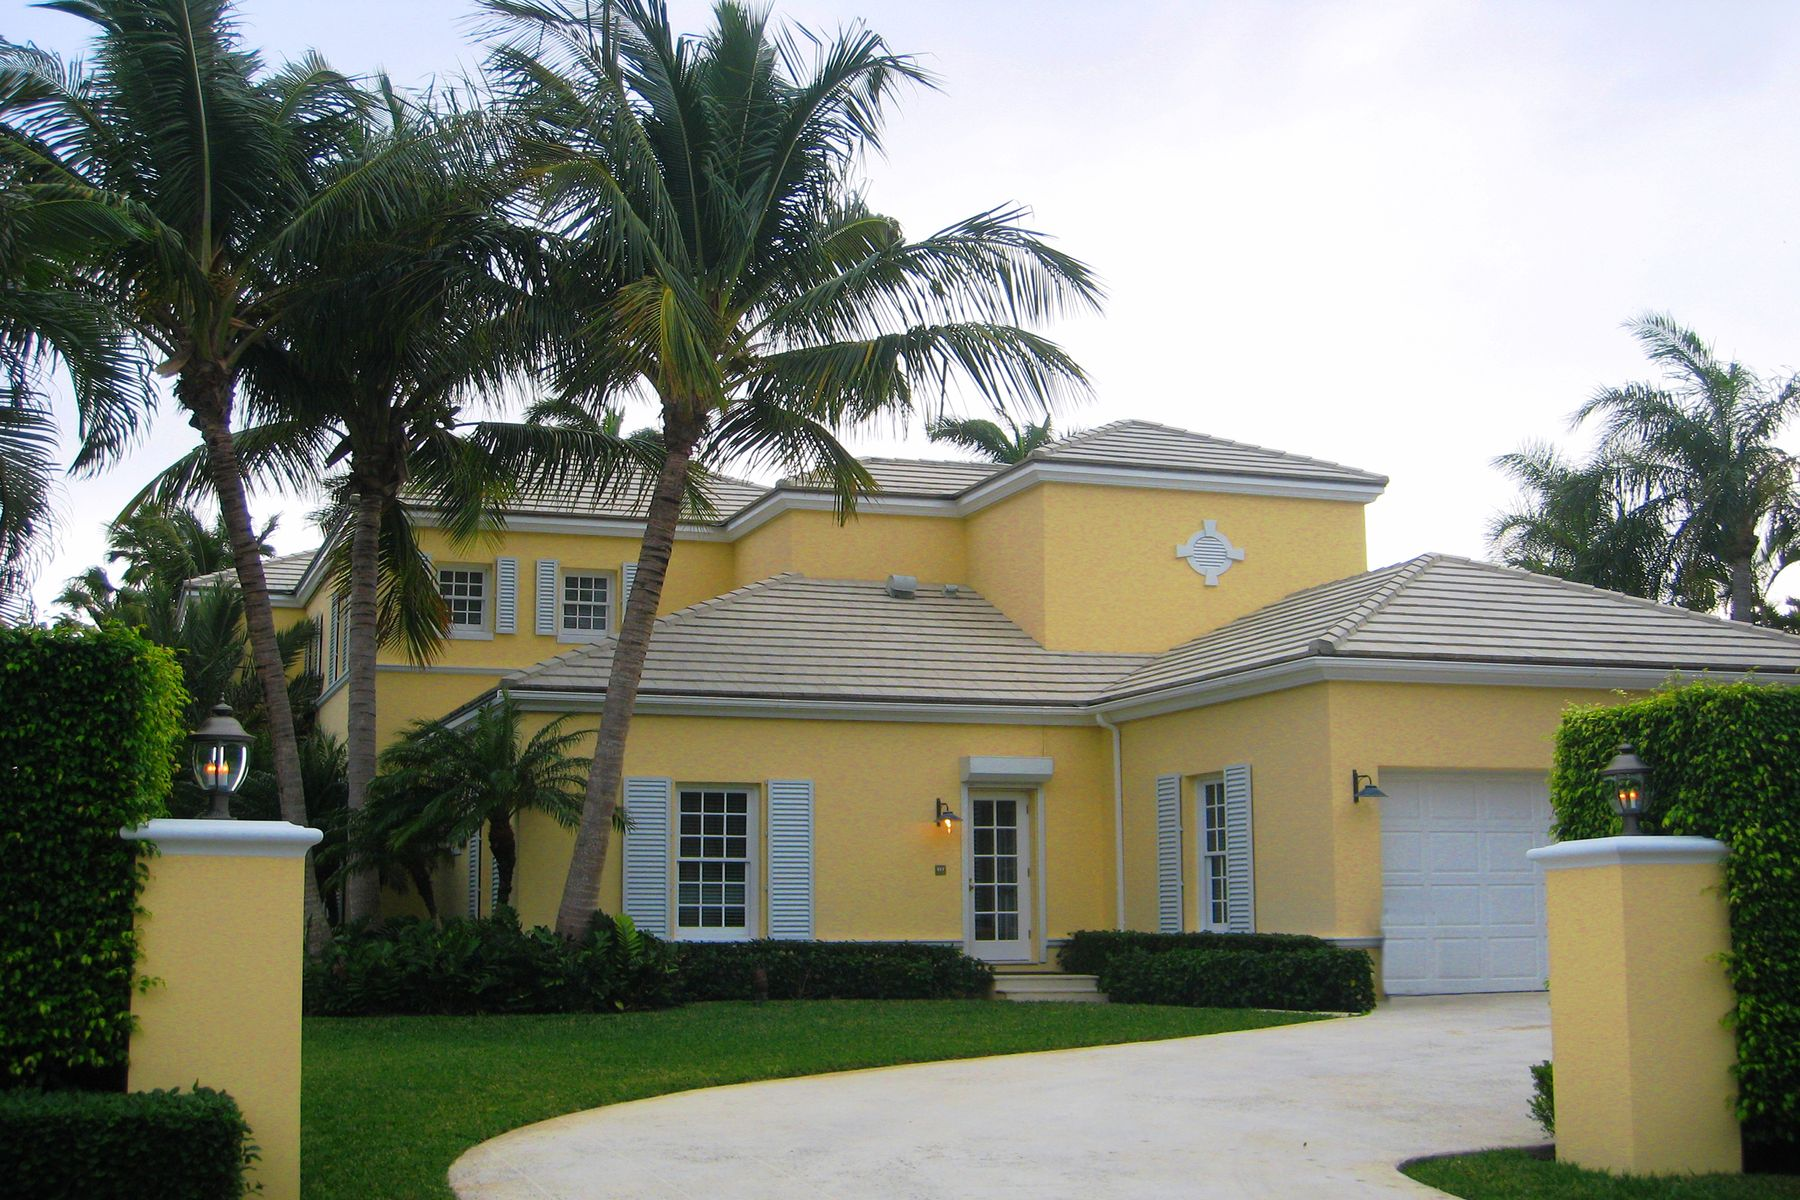 Enfamiljshus för Hyra vid British Colonial Rental 510 N Lake Way Palm Beach, Florida 33480 Förenta staterna